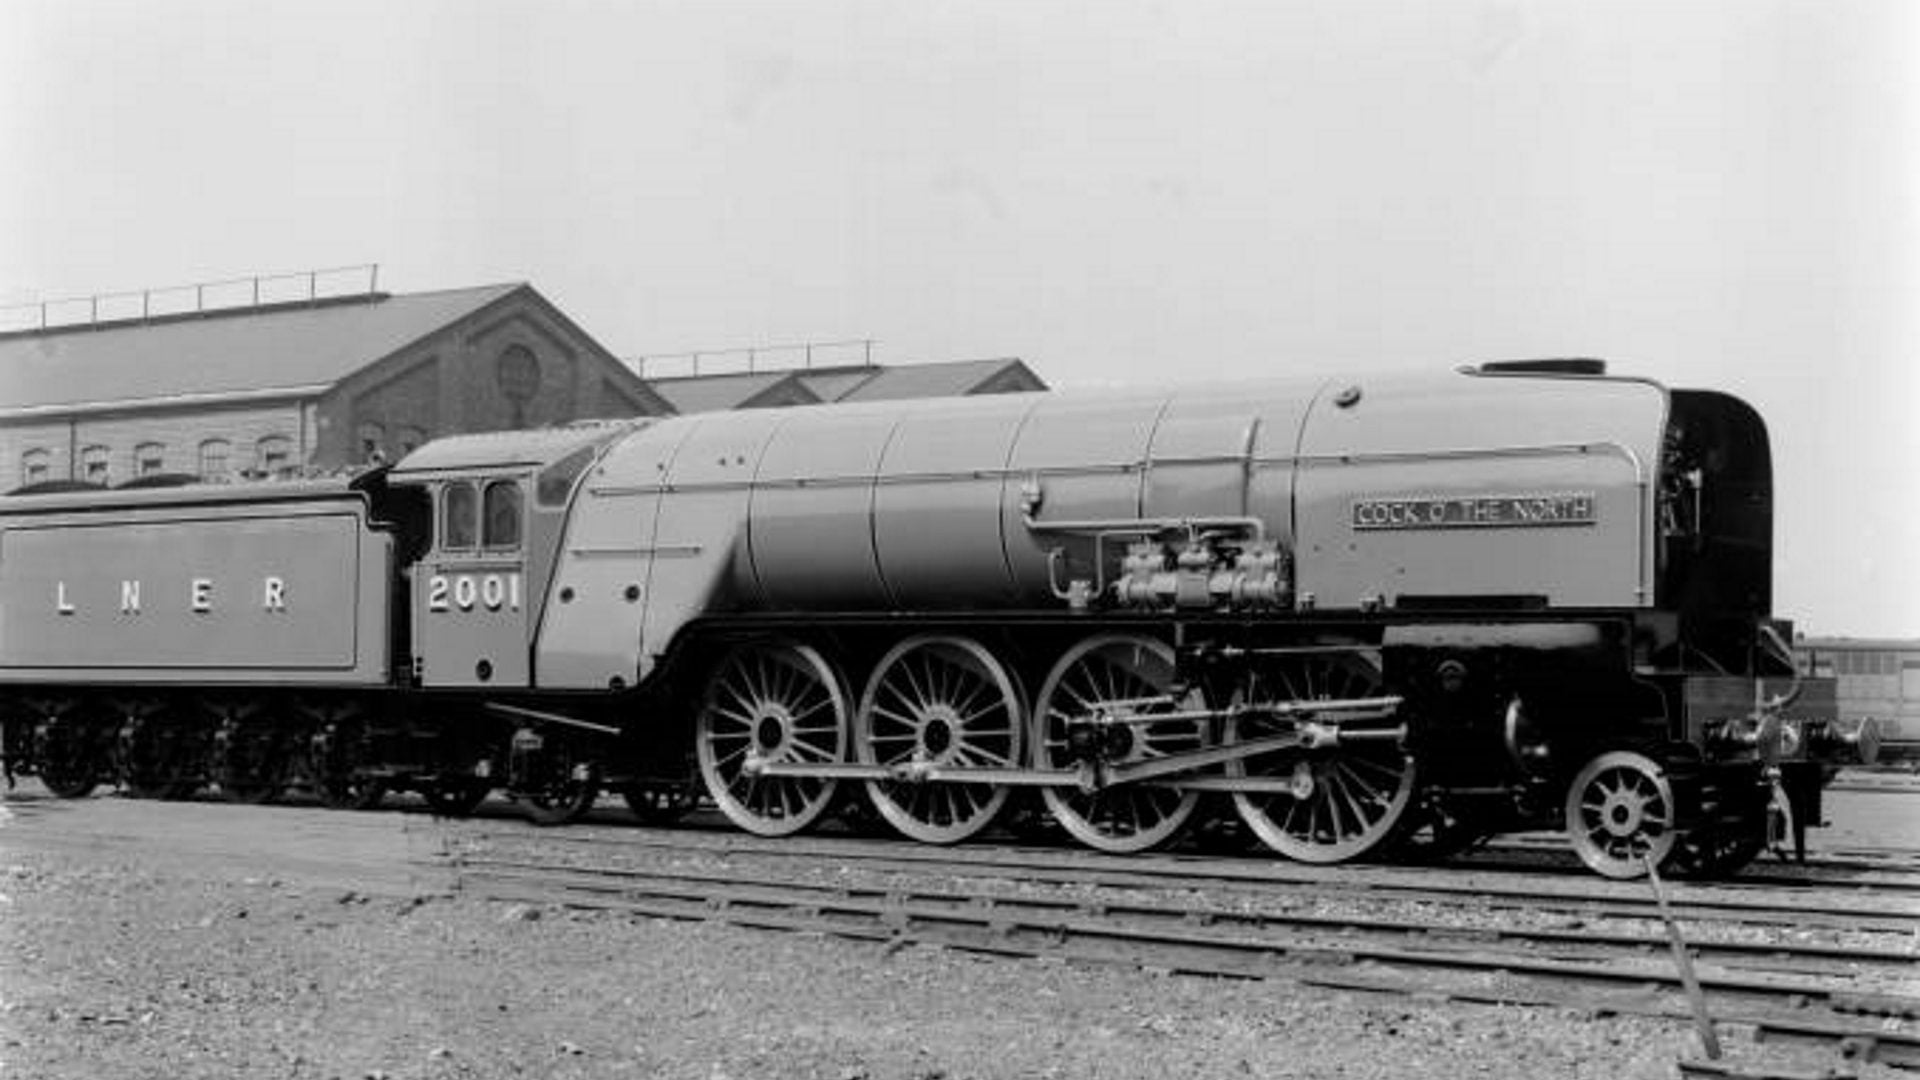 P2s - The P2 Steam Locomotive Company and Doncaster P2